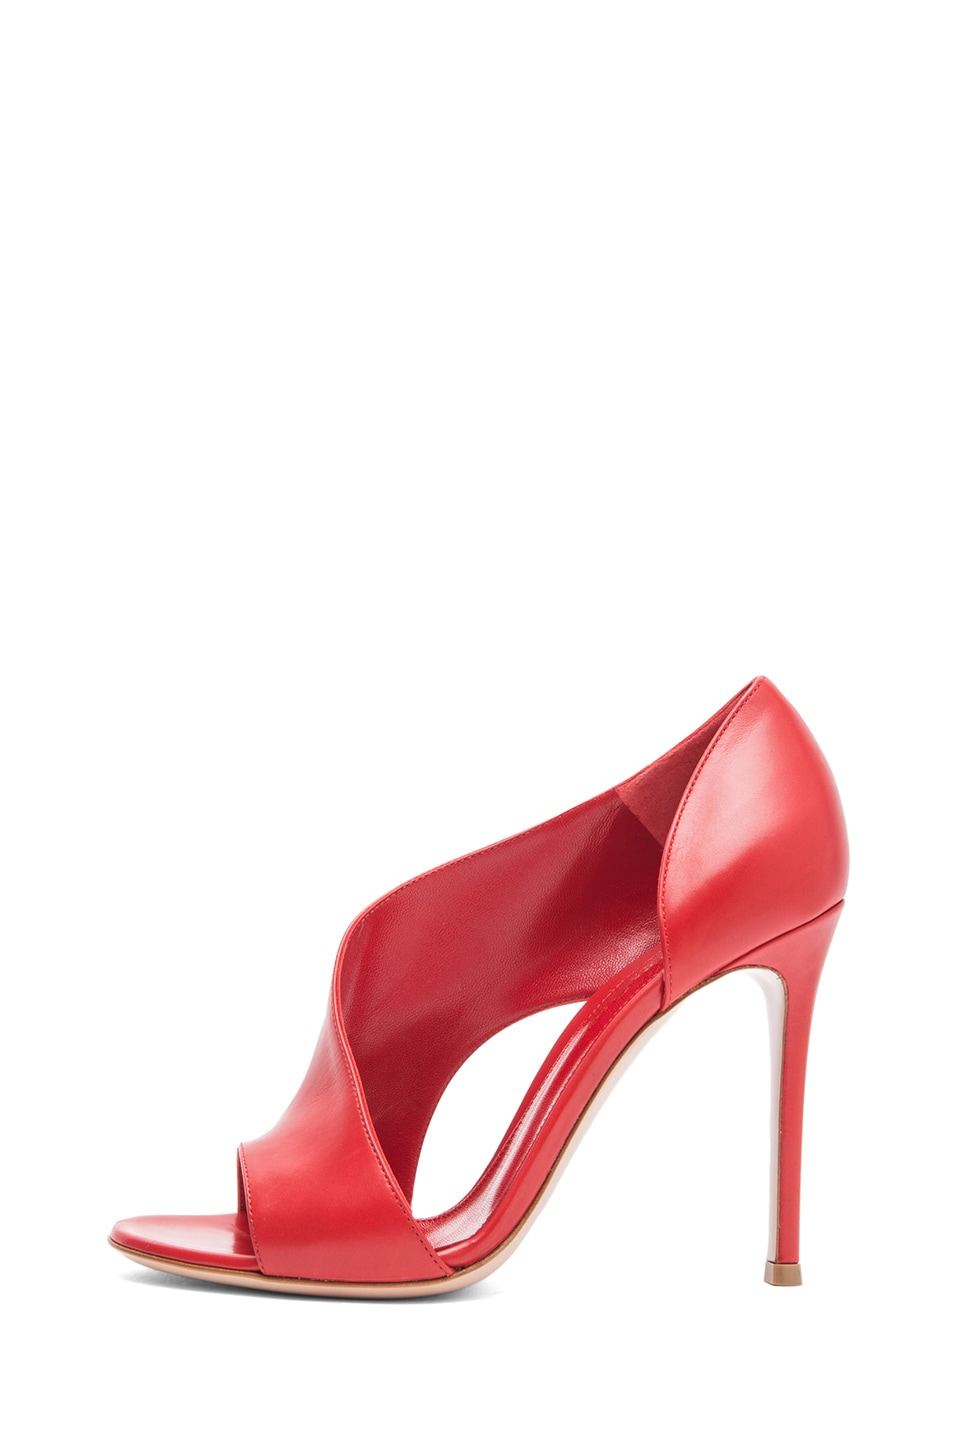 Image 1 of Gianvito Rossi Leather Heel in Red